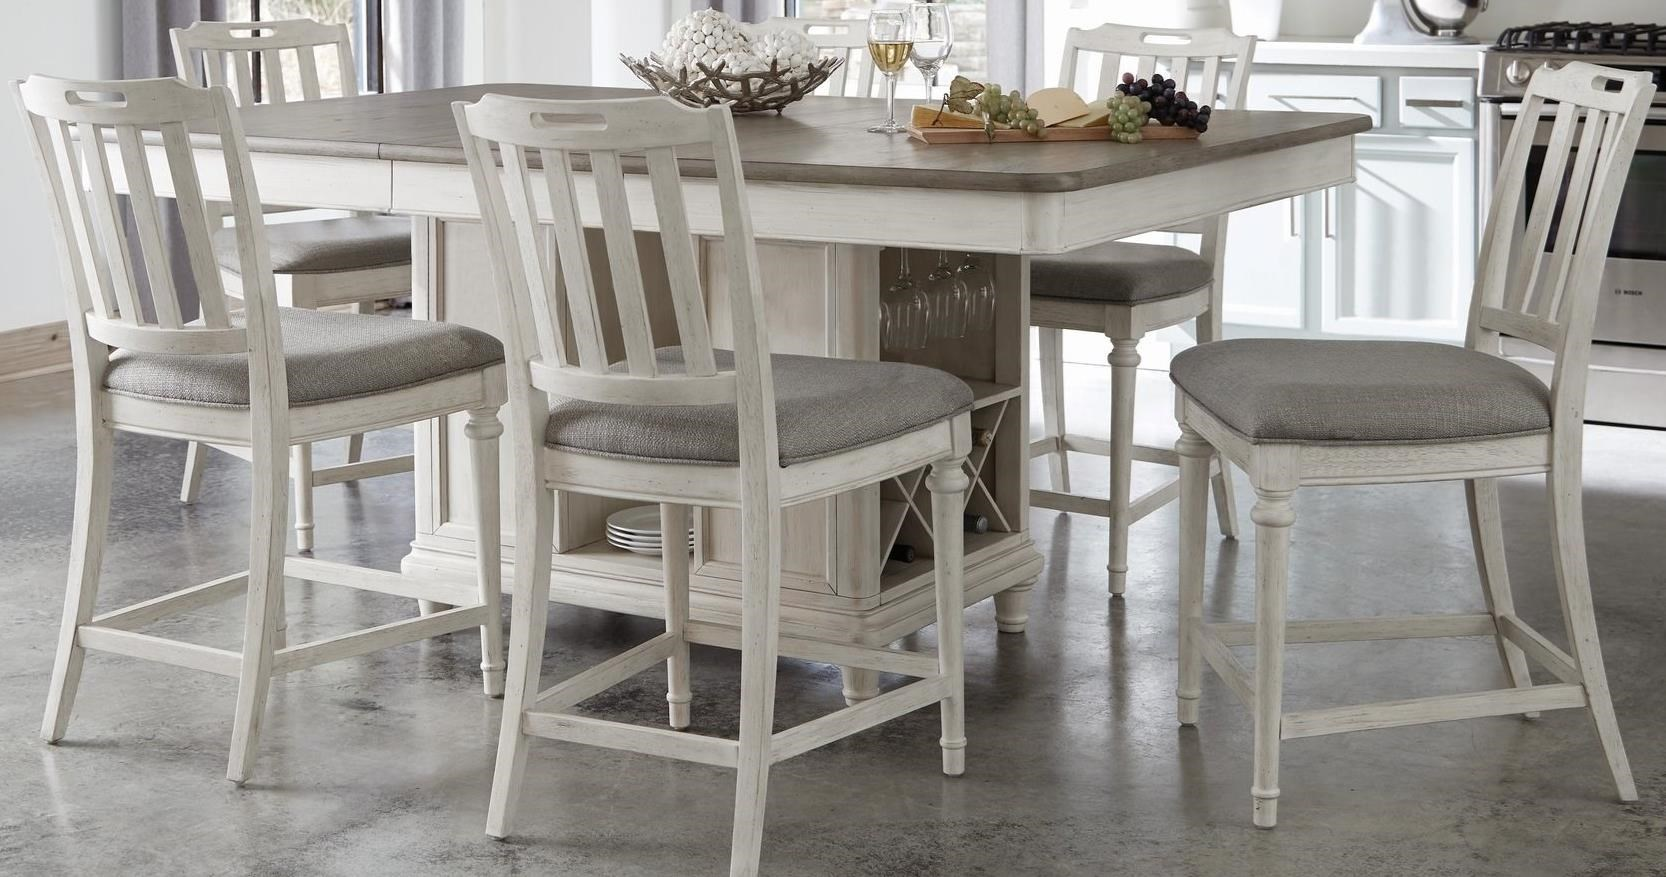 Sonoma 7-Piece Counter Height Table and Stools Set by Panama Jack by Palmetto Home at Baer's Furniture